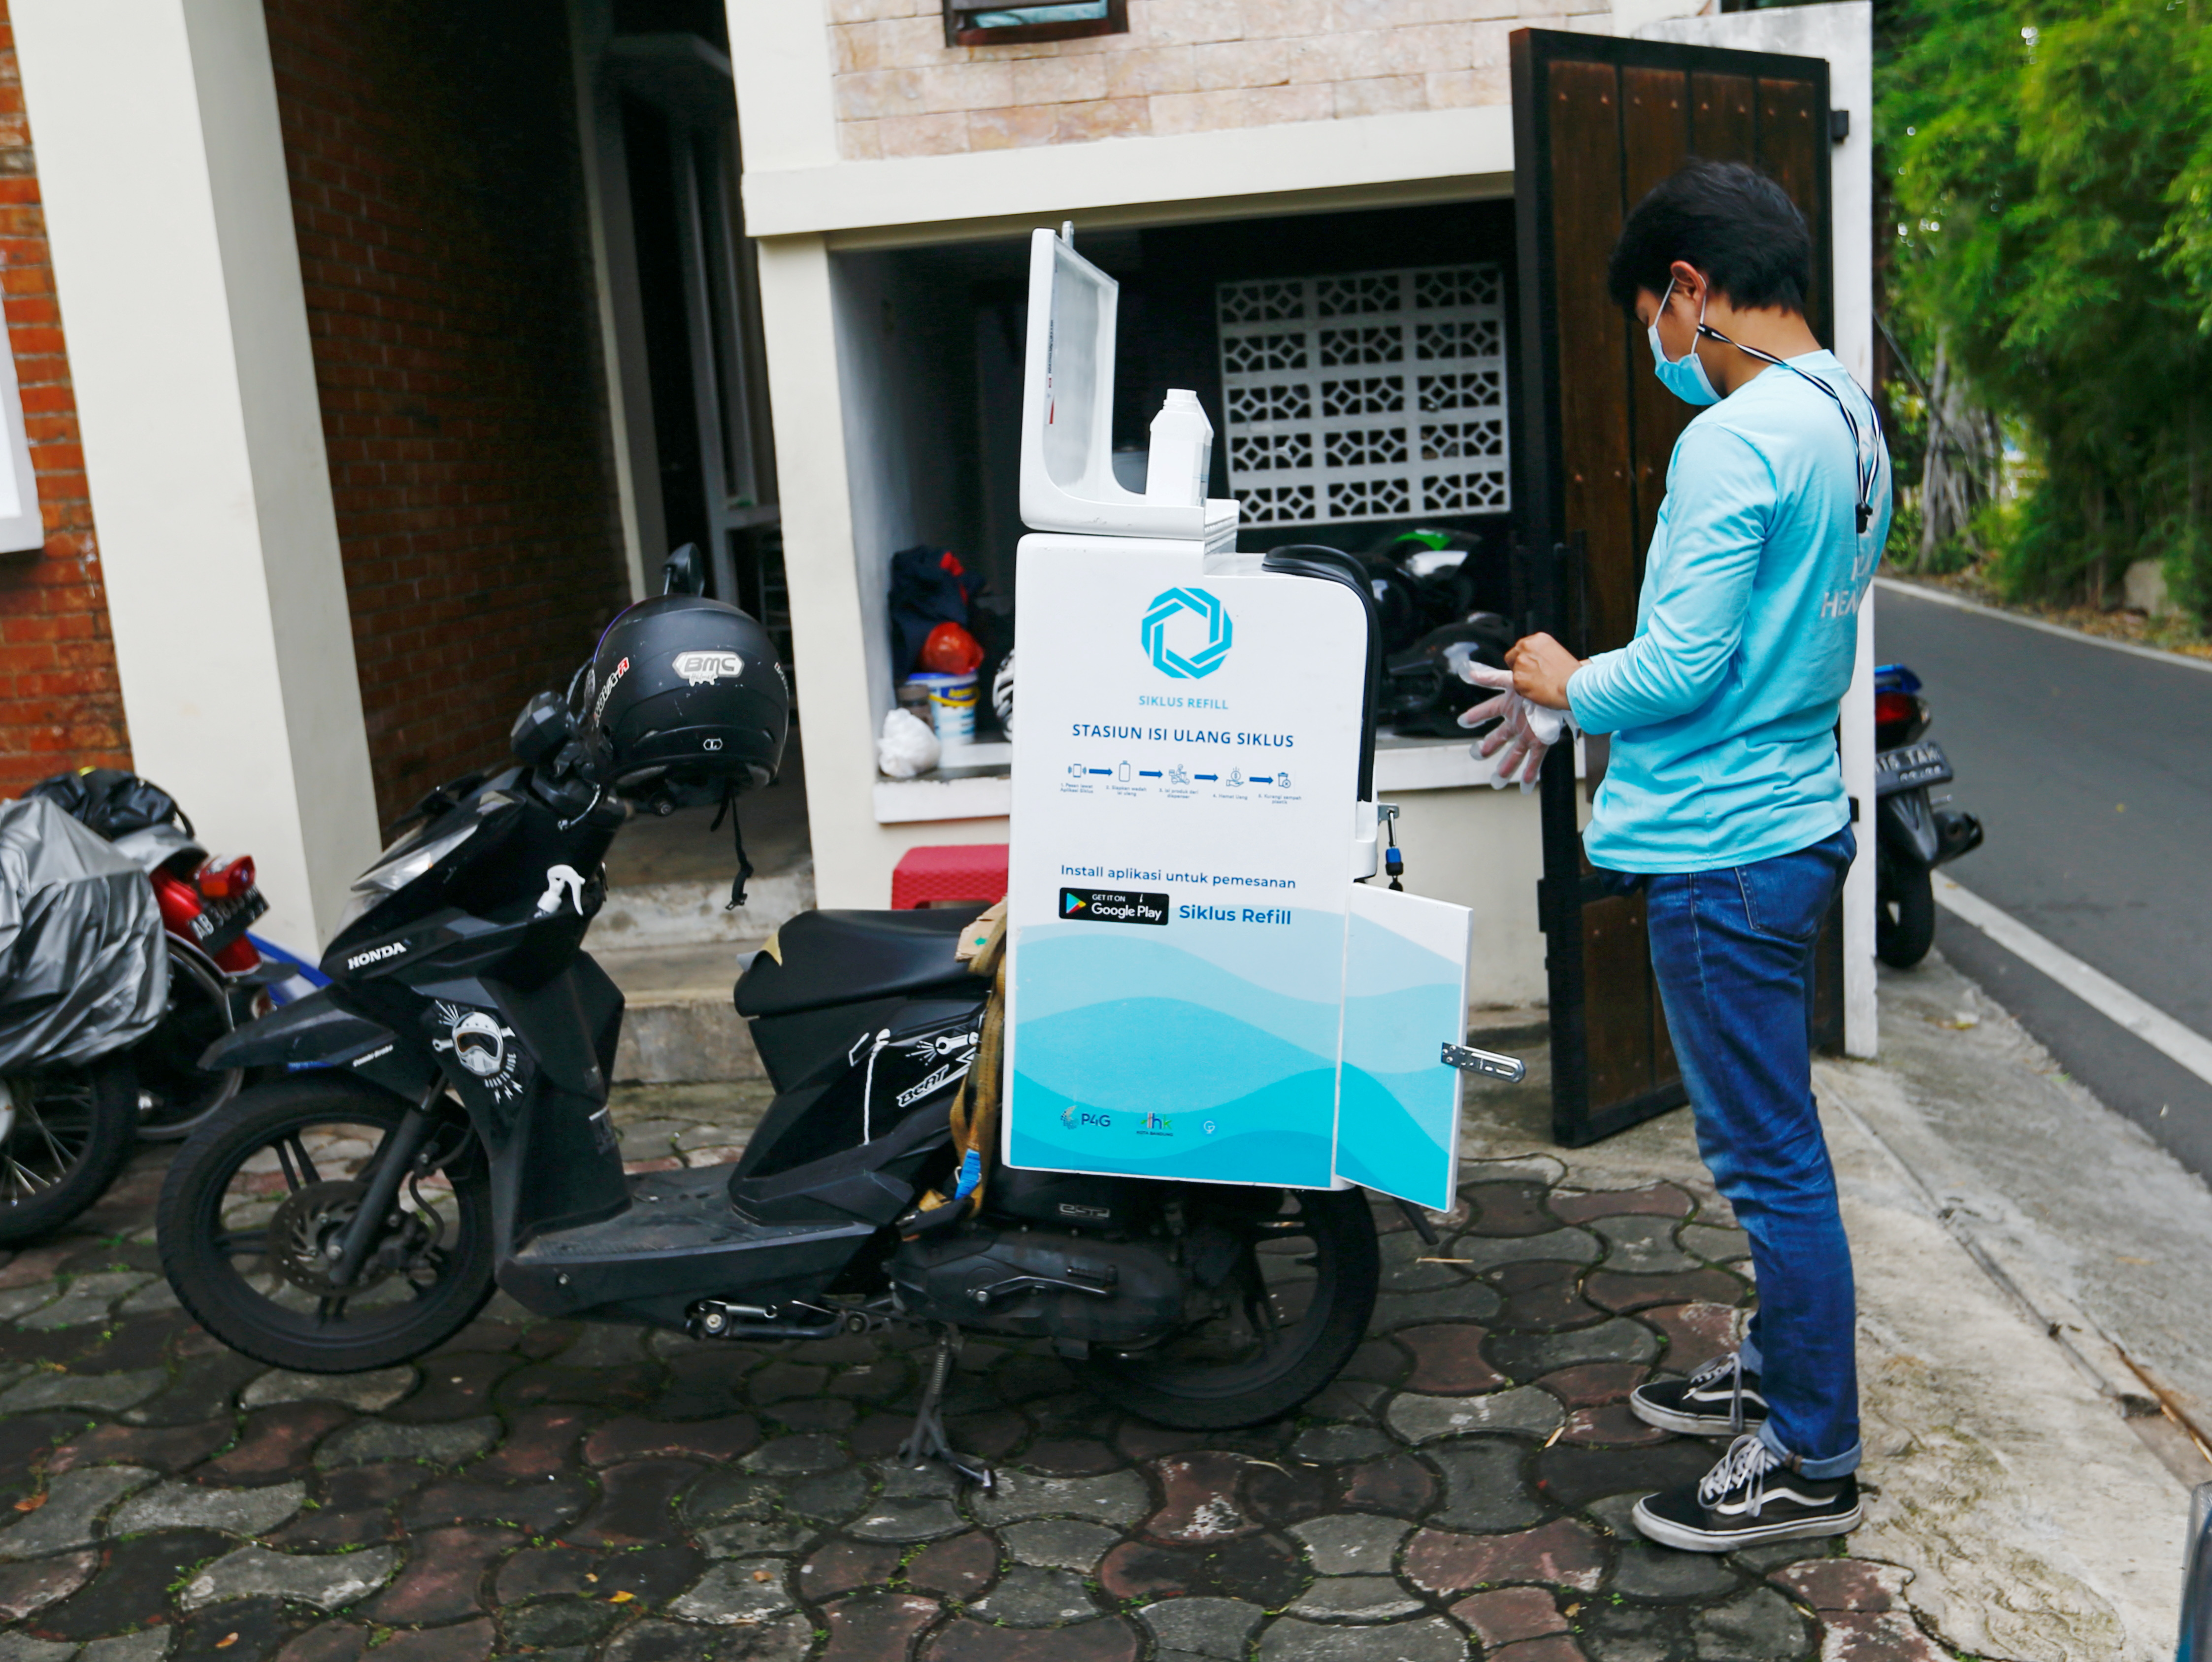 A deliveryman from Siklus, a start-up company which refills household products in a bid to reduce plastic waste, arrives at a customer's house in Jakarta, Indonesia, May 19, 2021. Picture taken May 19, 2021 REUTERS/Ajeng Dinar Ulfiana